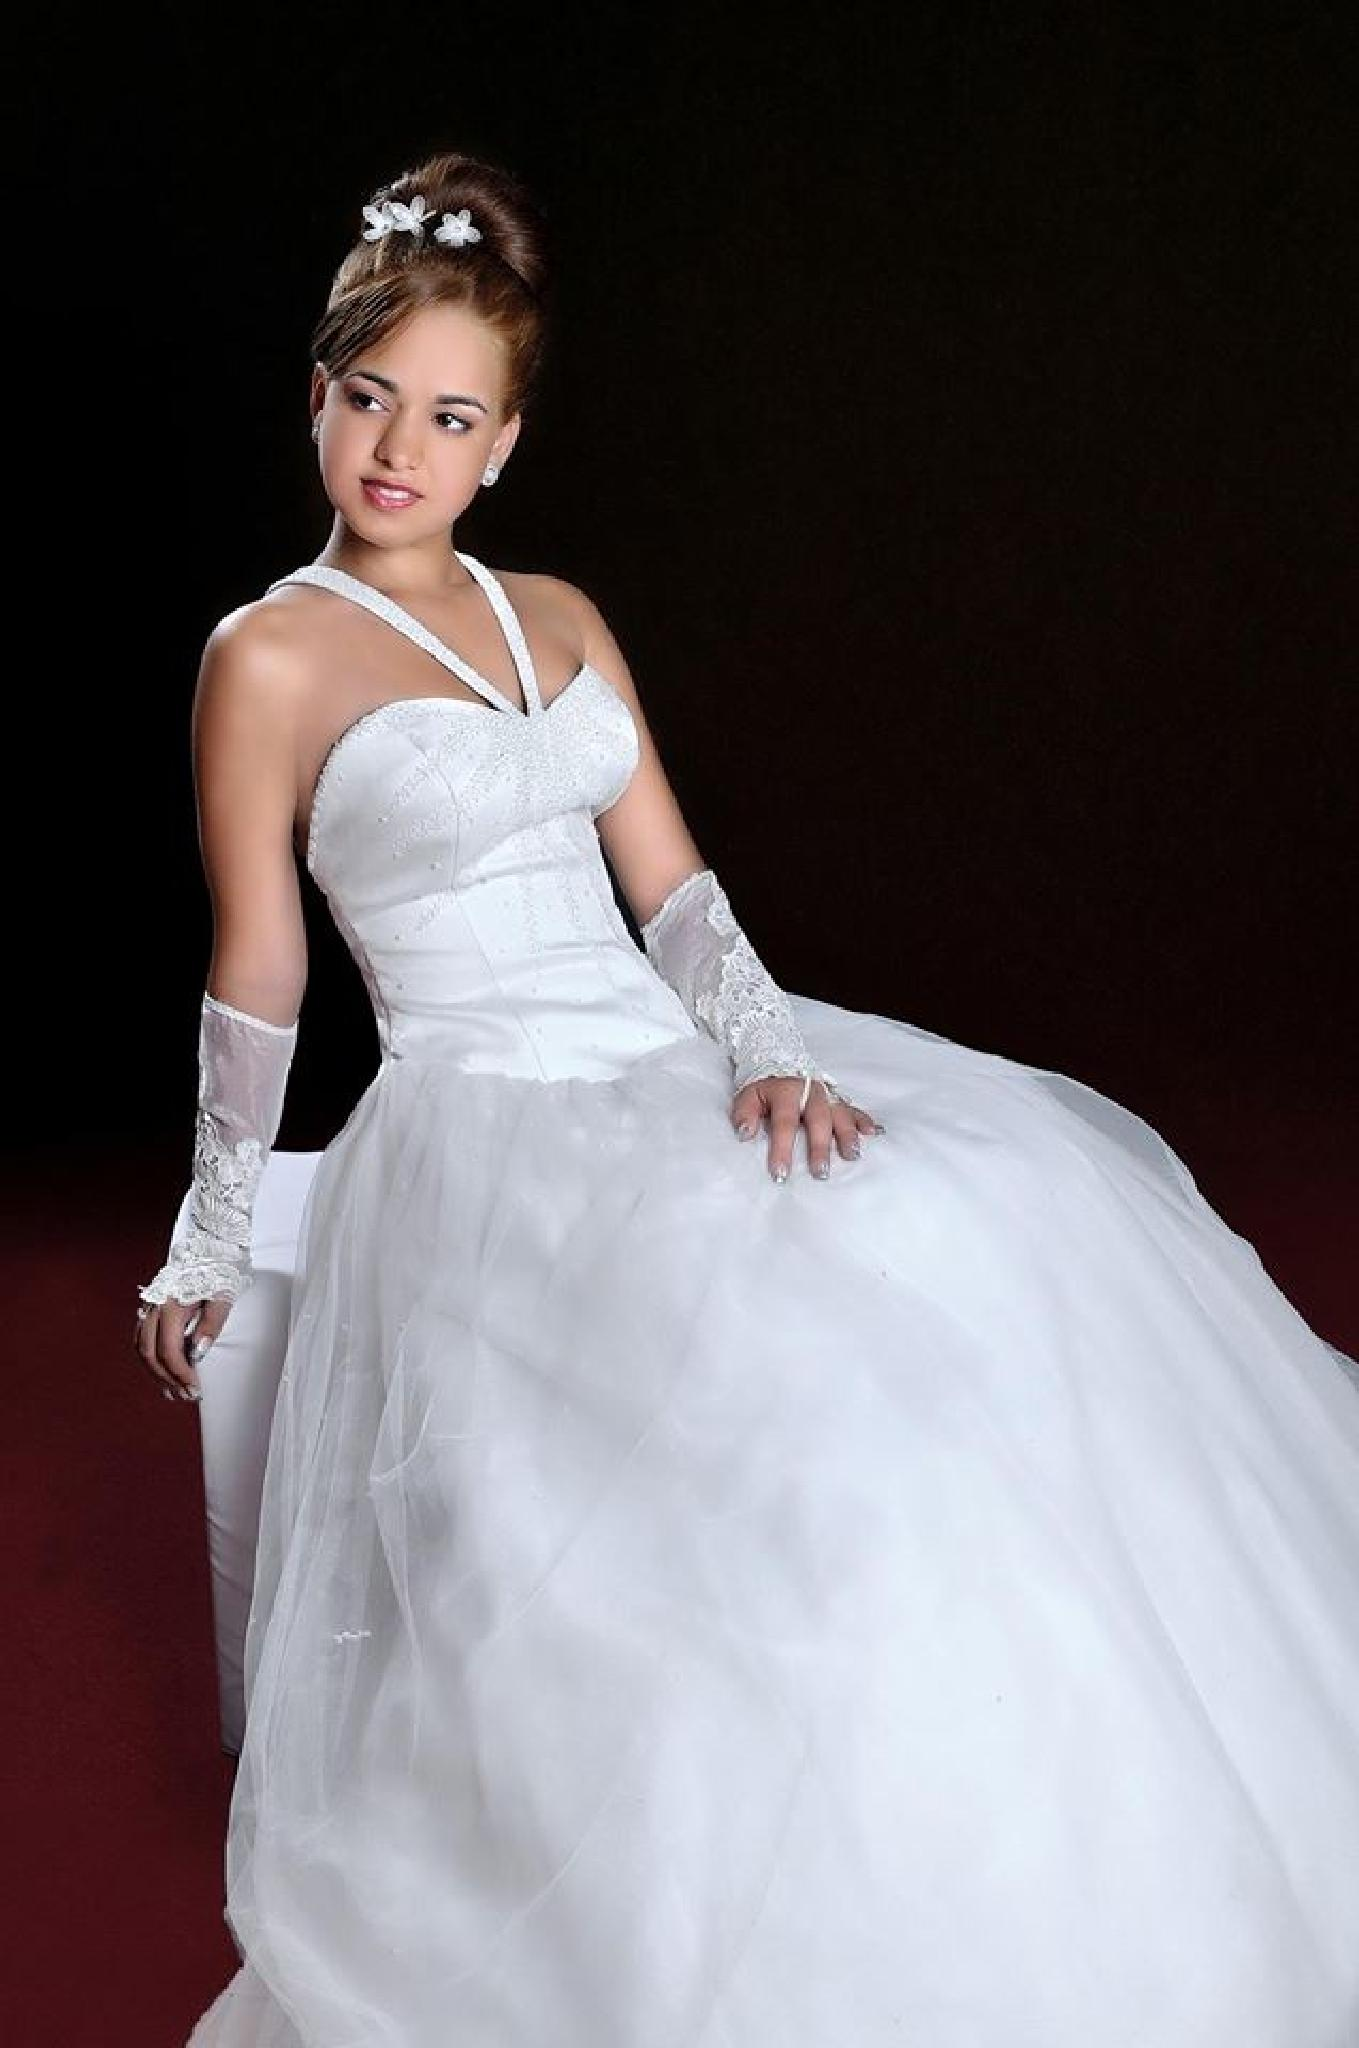 In Prom Dress I by Markesky Holland